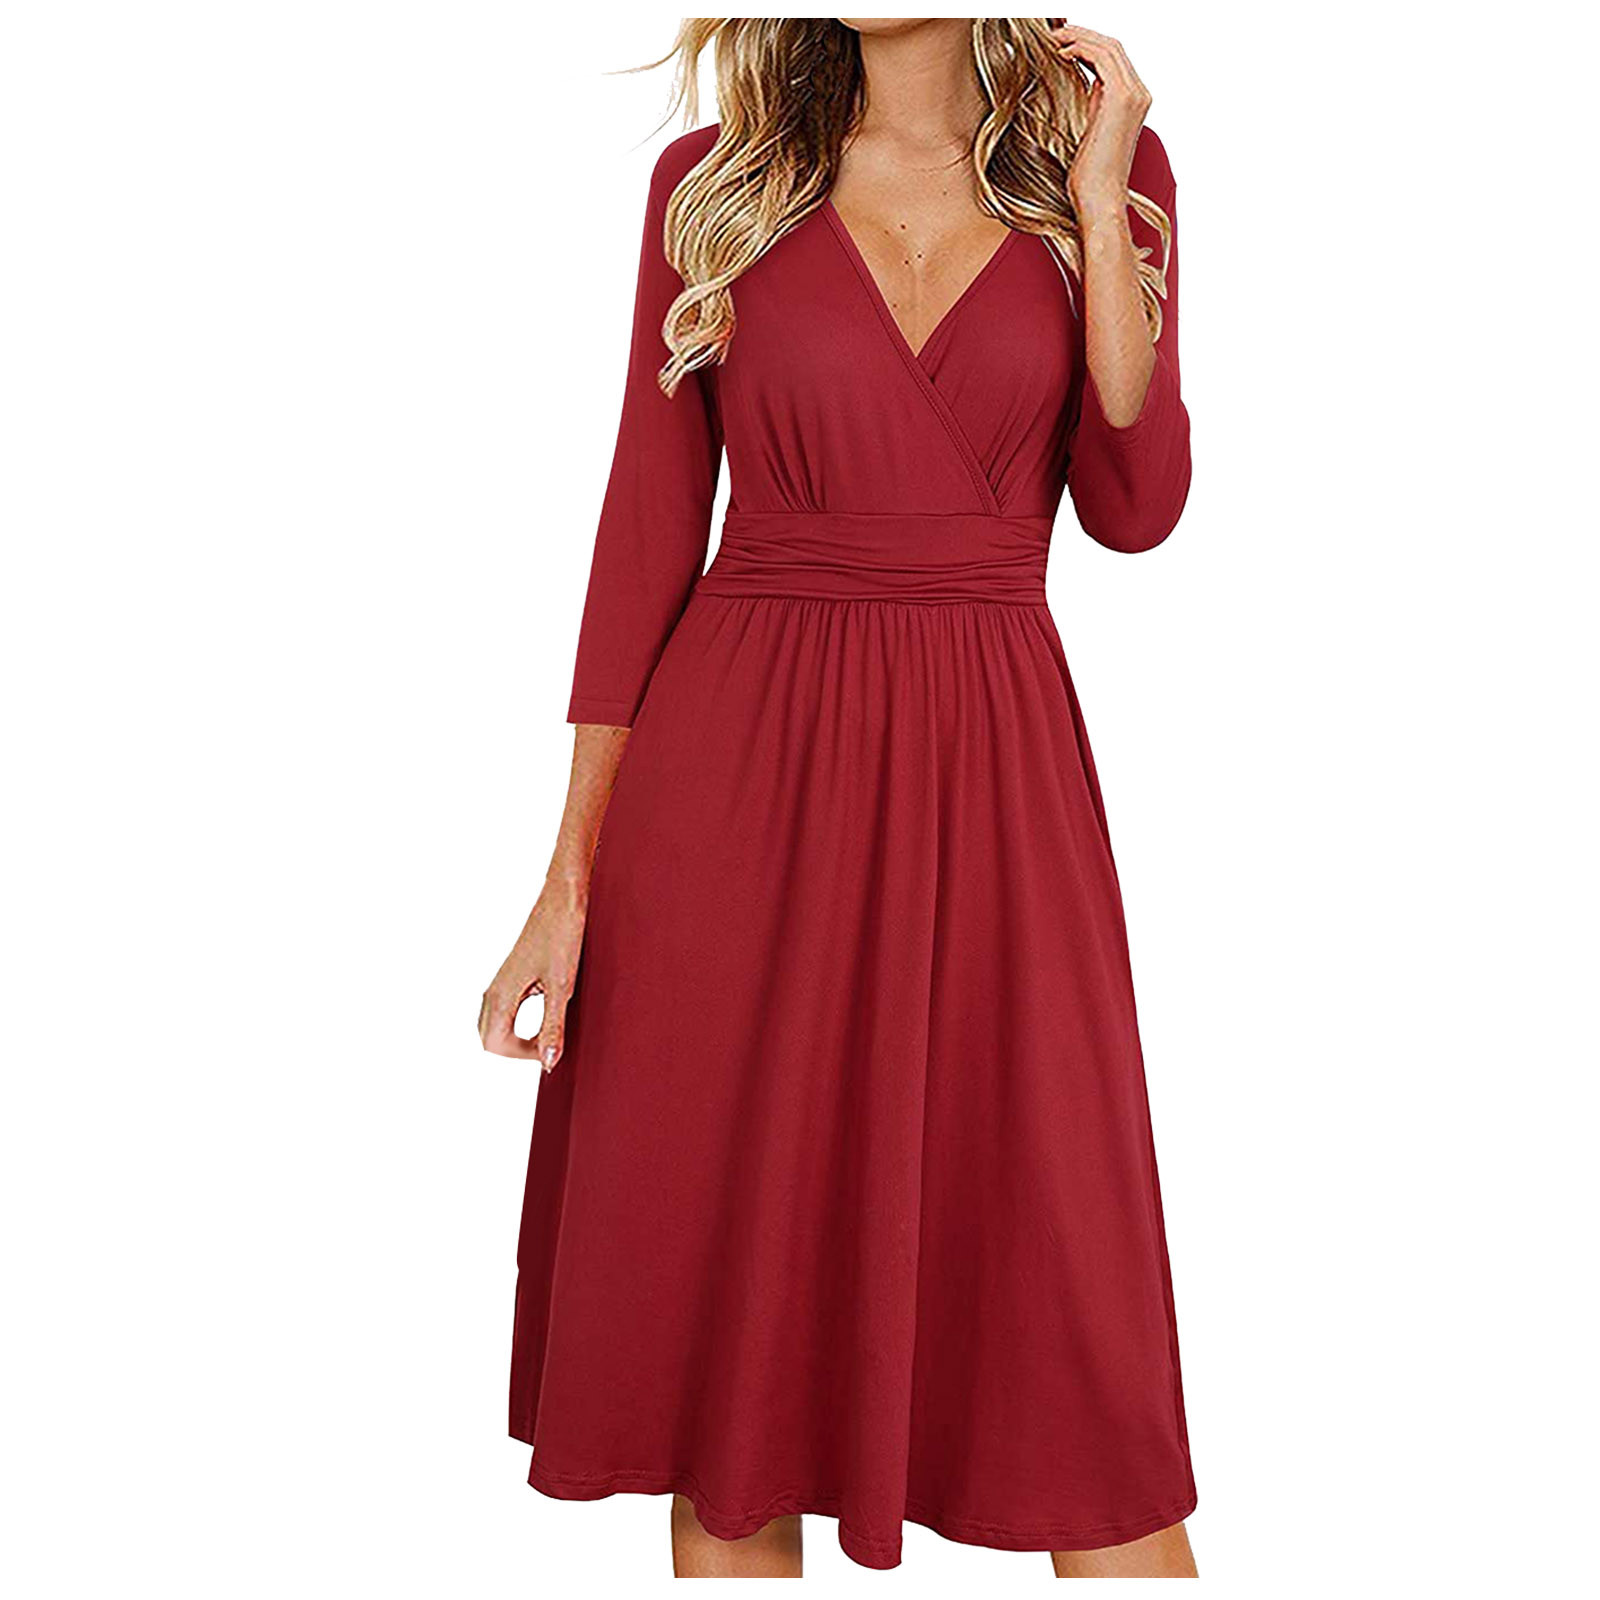 vestido de mujer Women Fashion Solid Color Three-quarter Sleeve Long Skirt Pocket Dress femme robe платье 2021